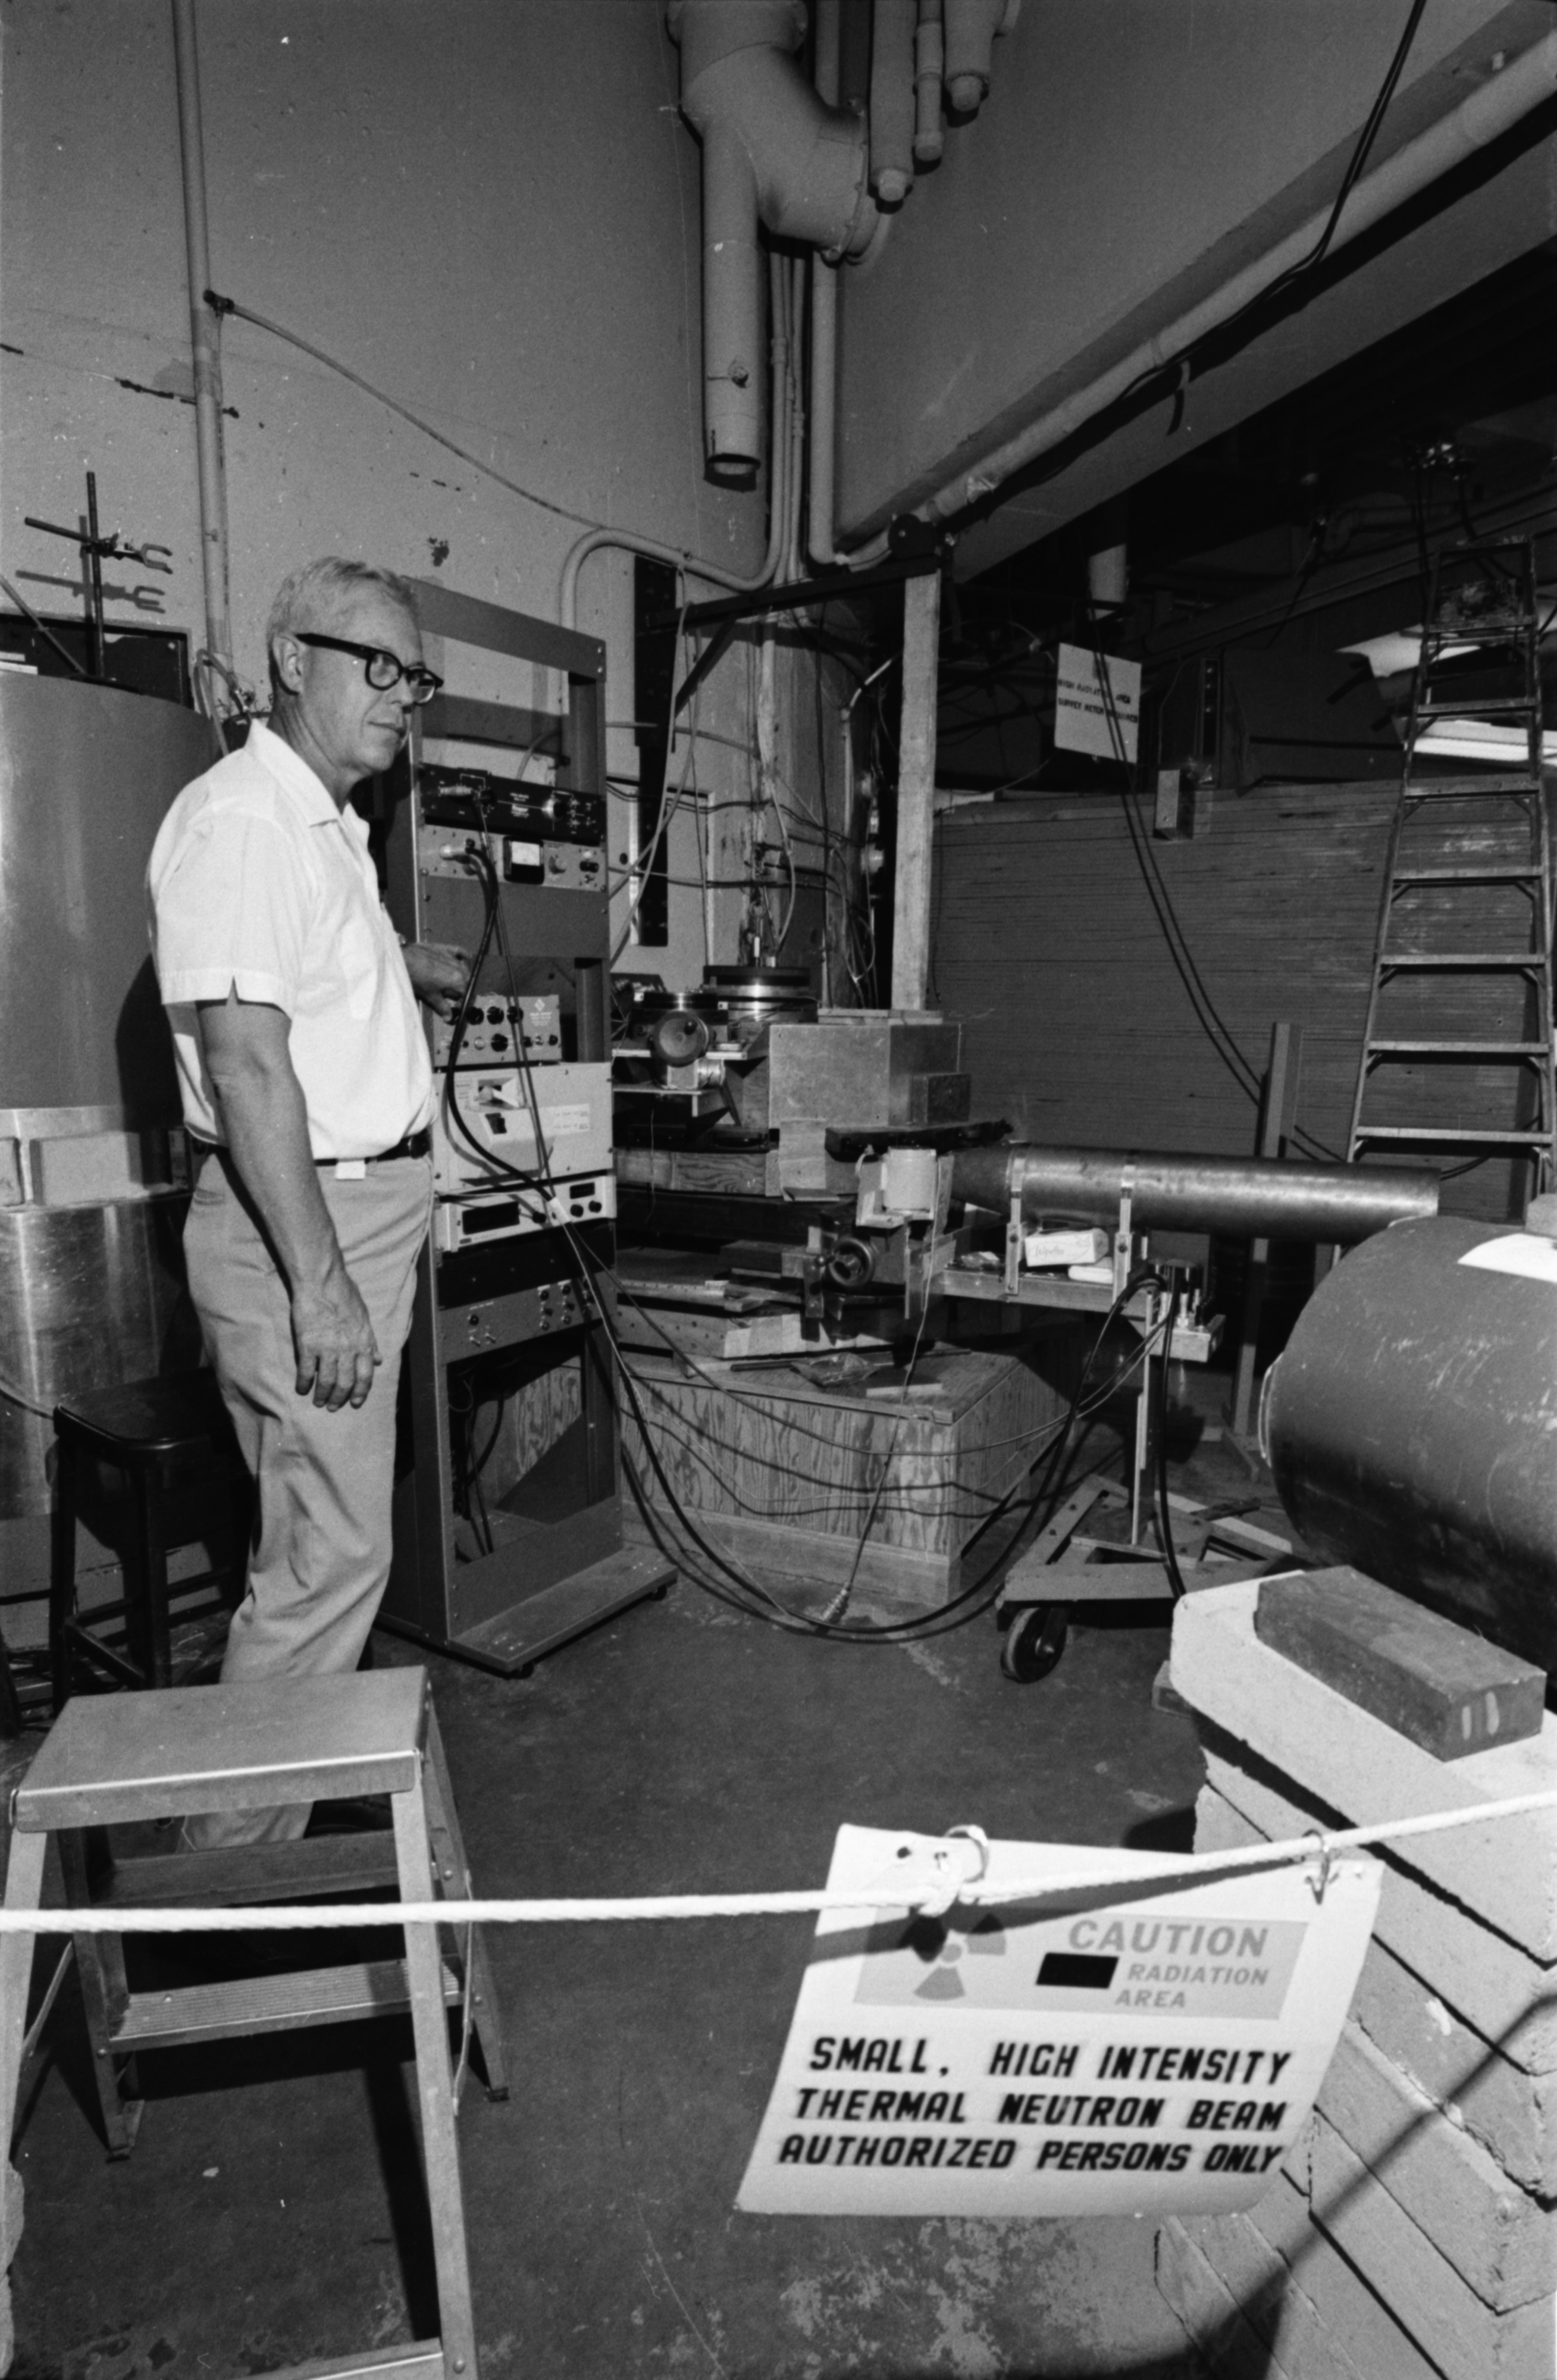 Professor William Kerr, in the Phoenix Memorial Laboratory, North Campus, August 1968 image